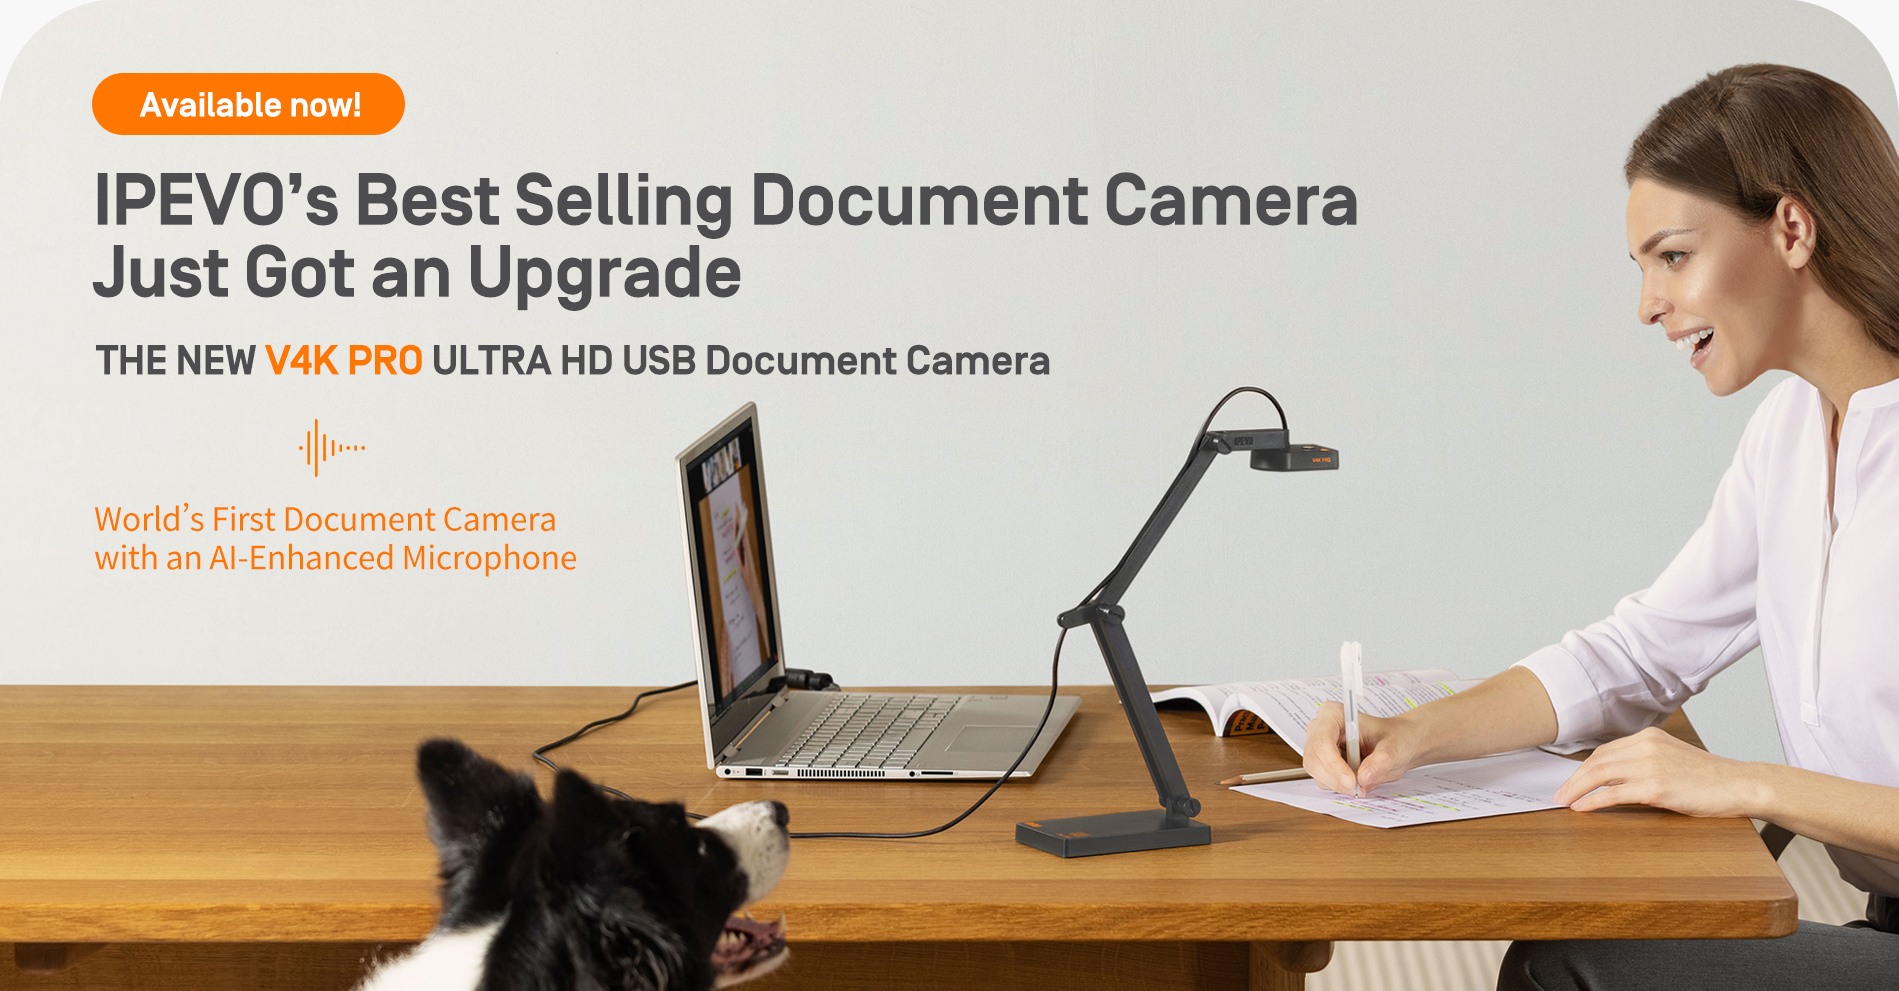 IPEVO's Best Selling Document Camera Just Got an Upgrade